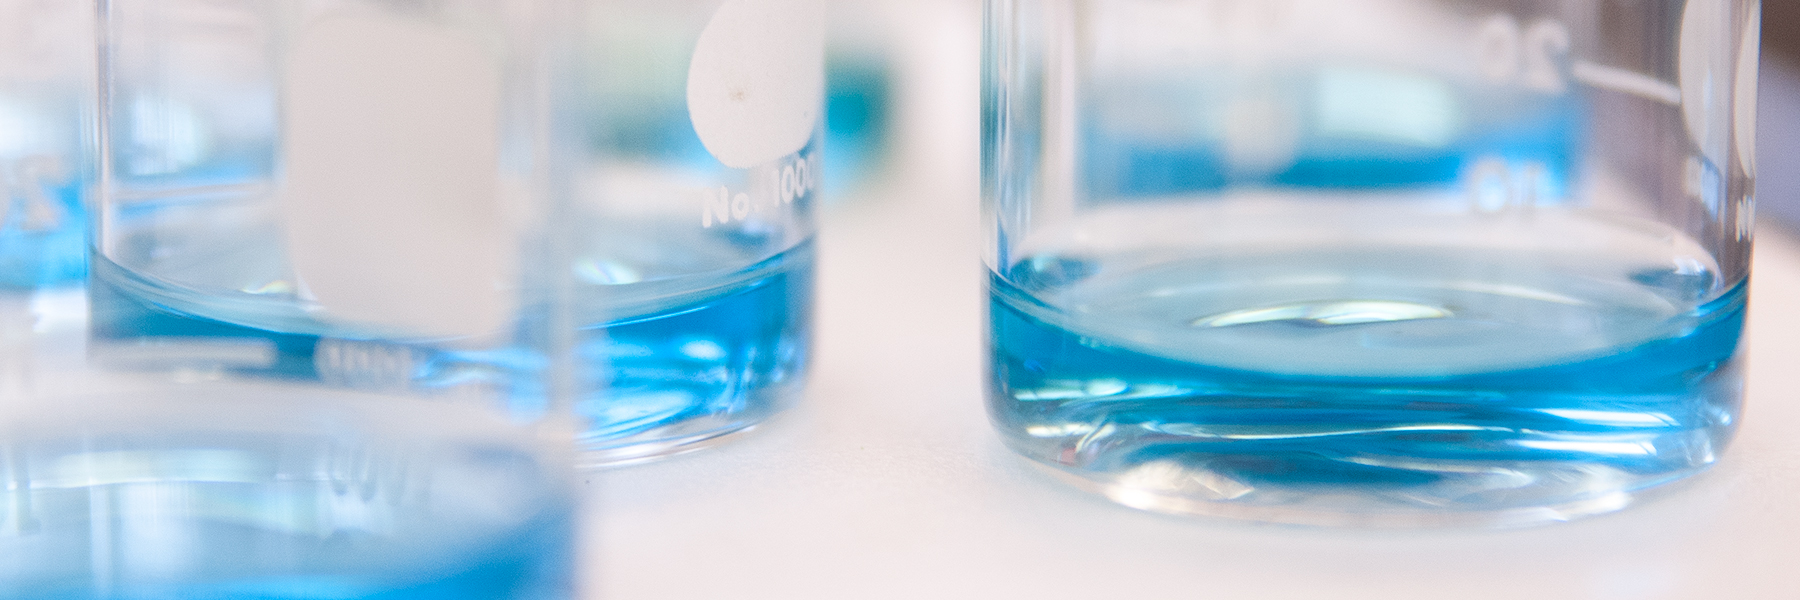 Chemistry beakers filled with blue liquid